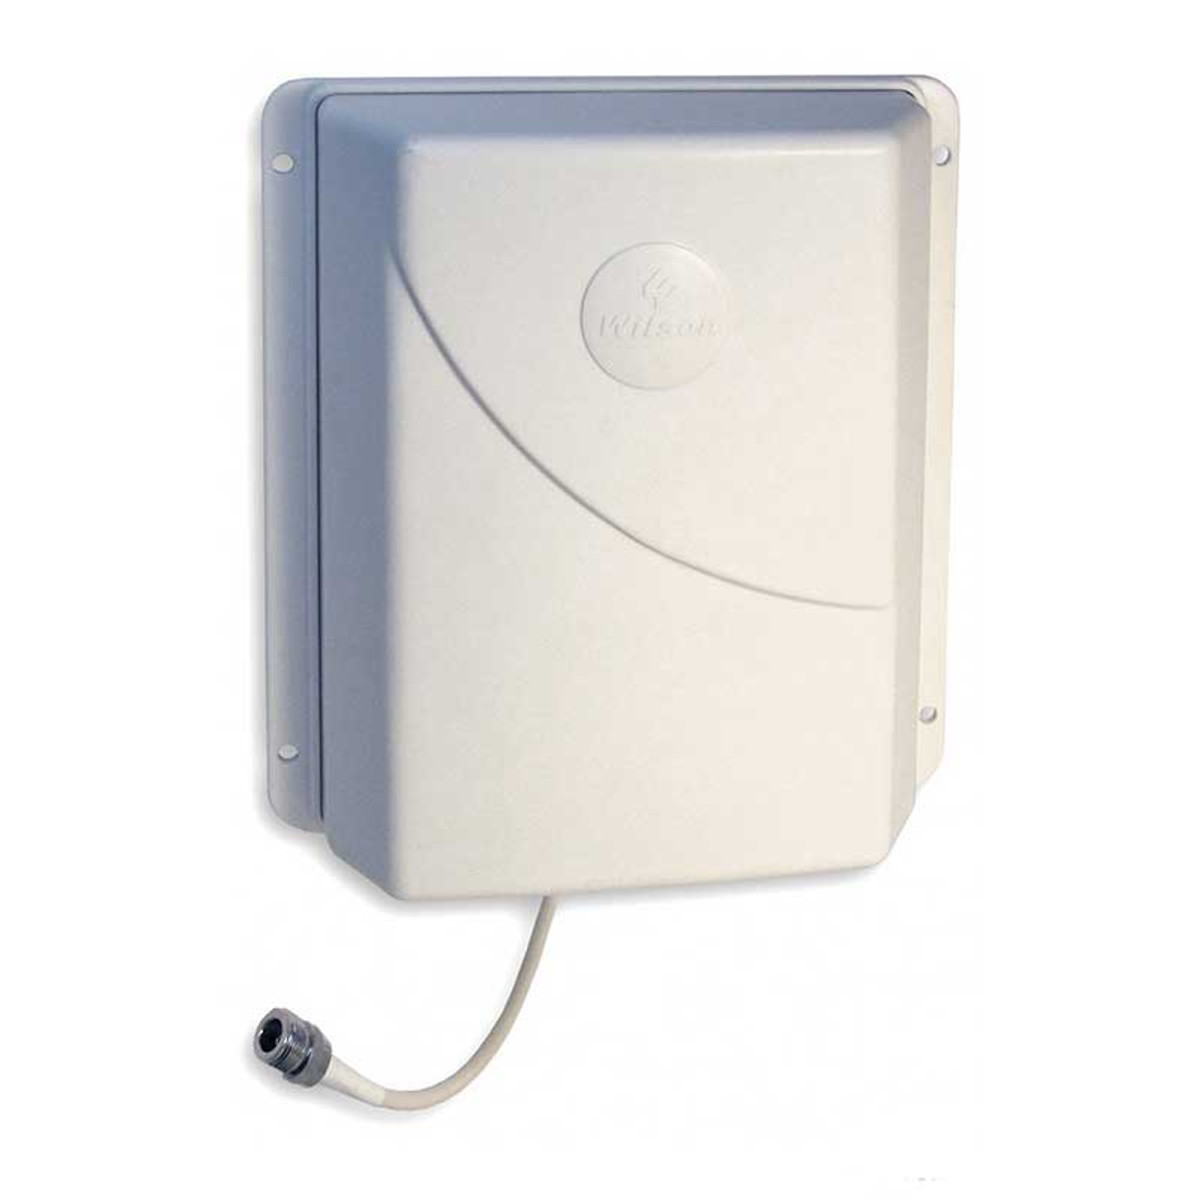 Wilson 304471 Ceiling Mount Panel Antenna 700-2700Mhz 75 ohms Multi Band, with ceiling mount installed